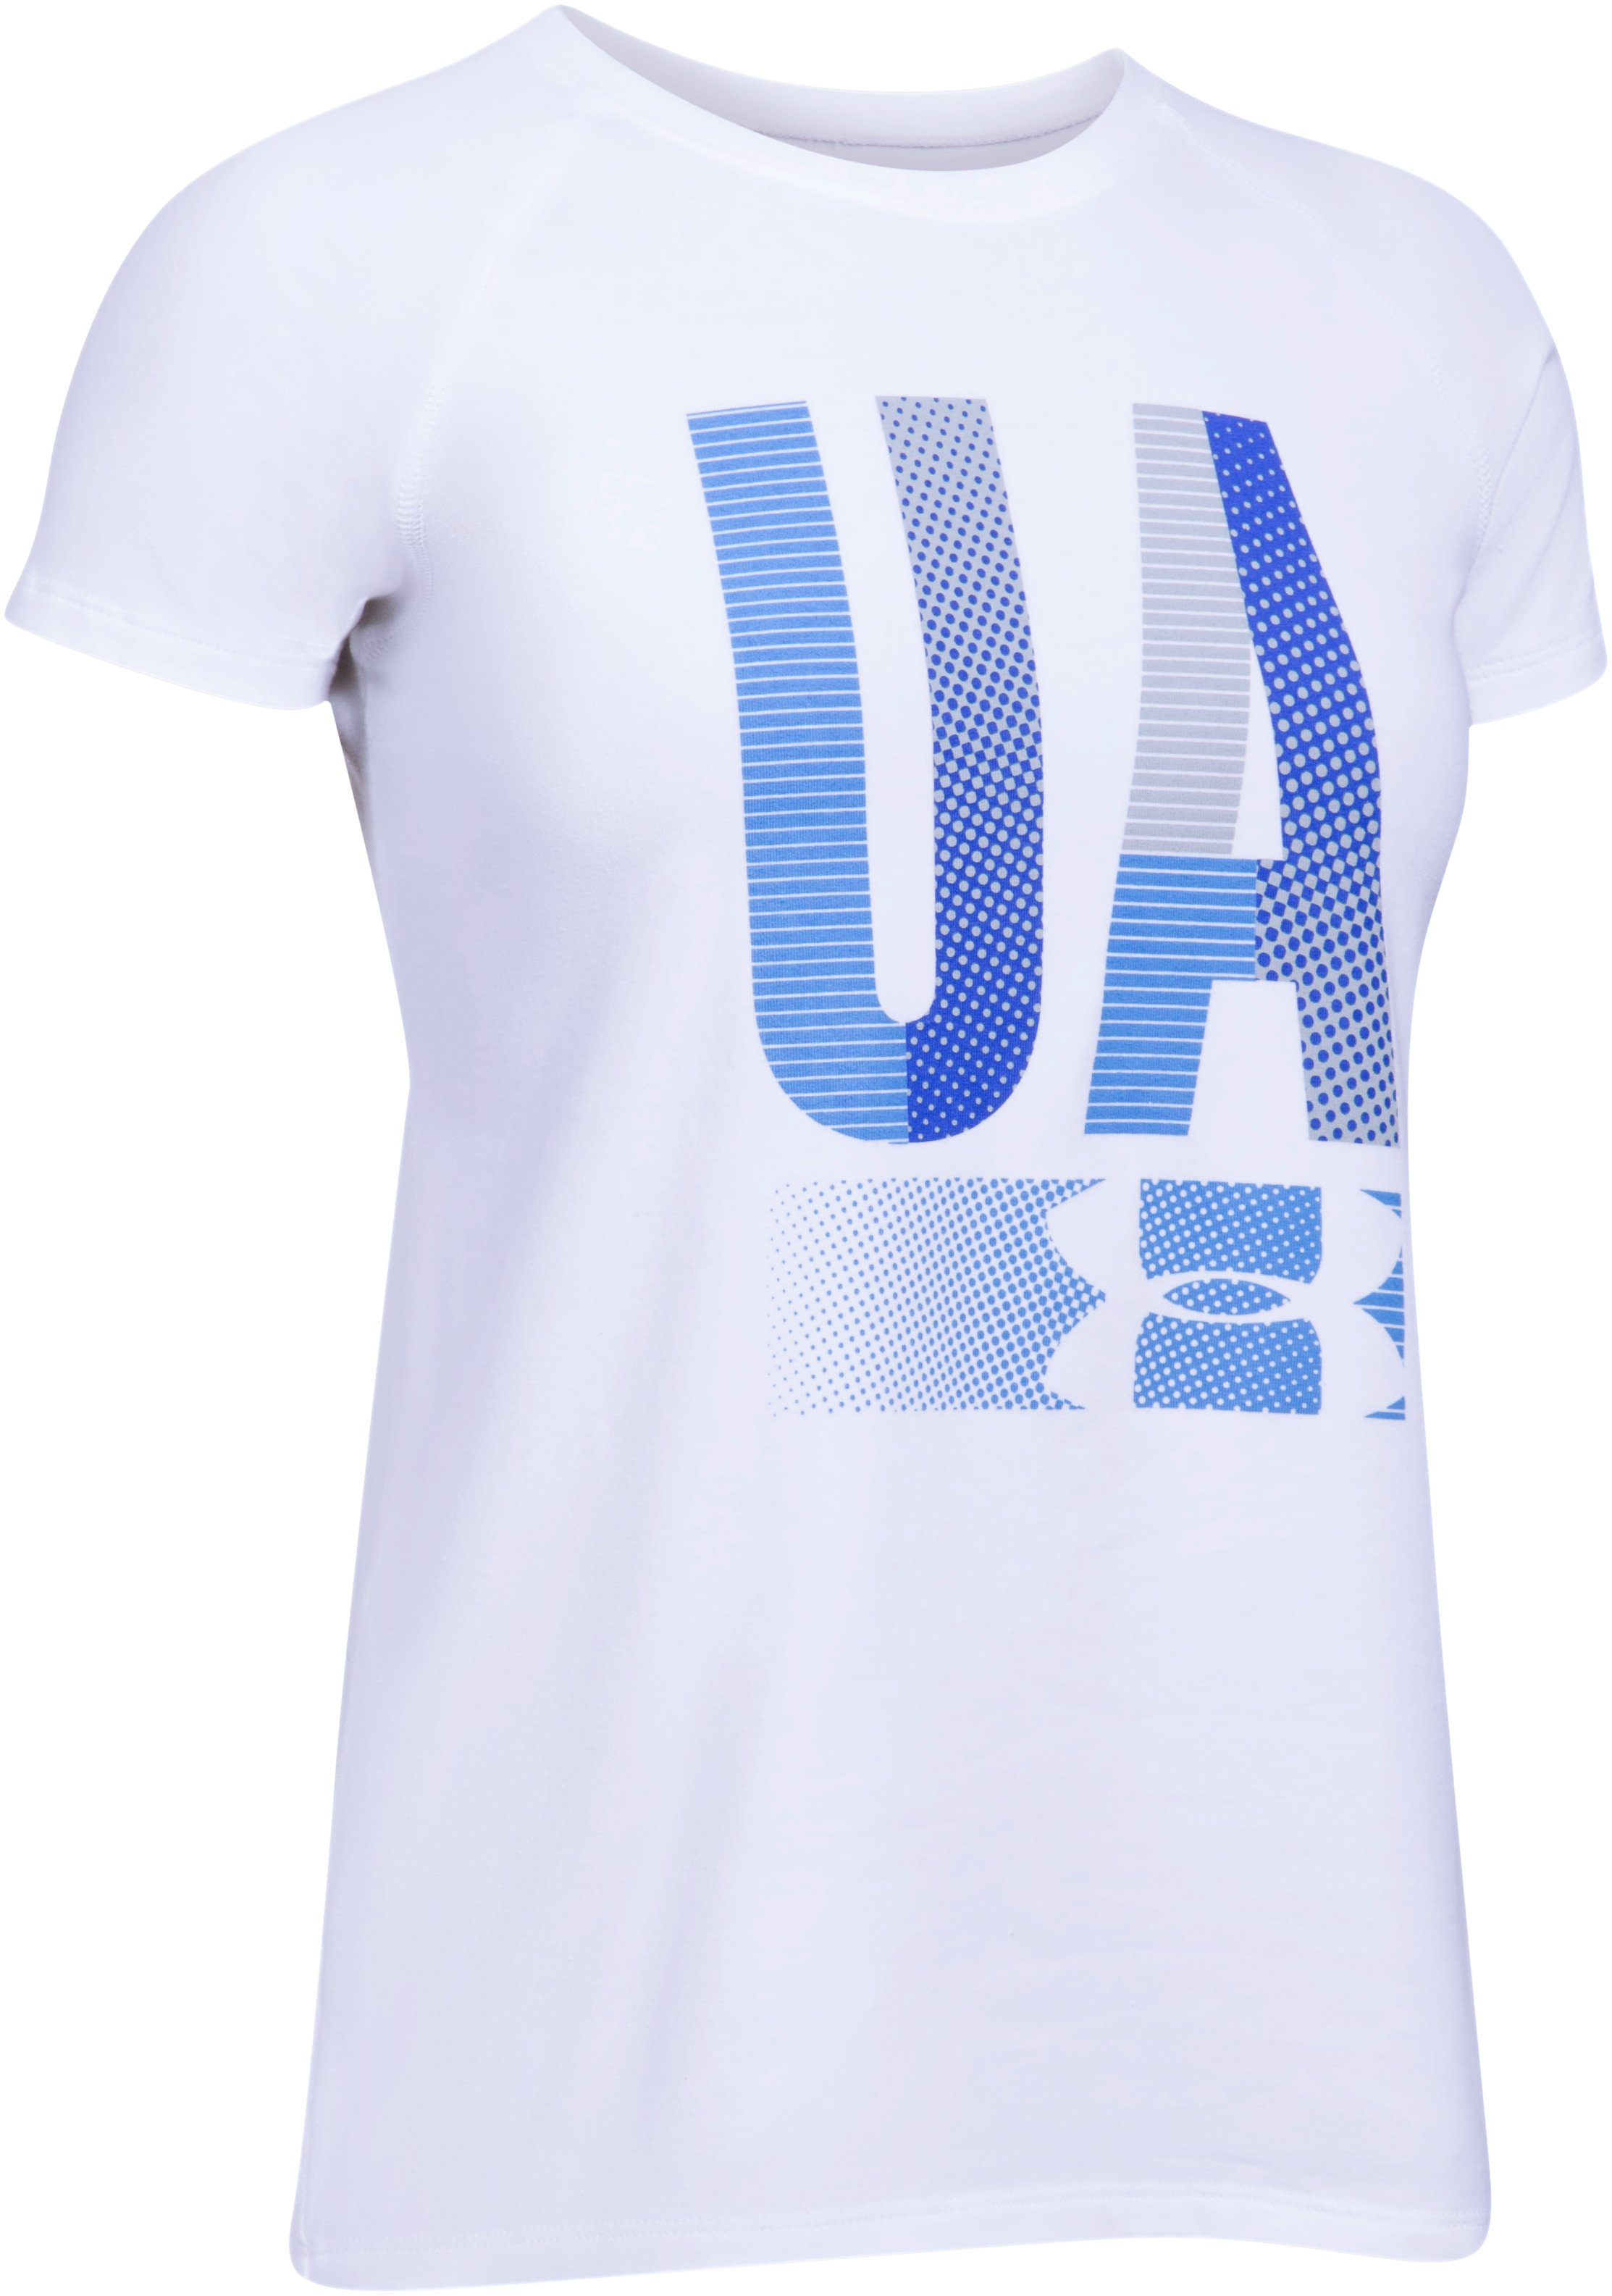 Girls' UA Multiplex Logo Short Sleeve T-Shirt, White